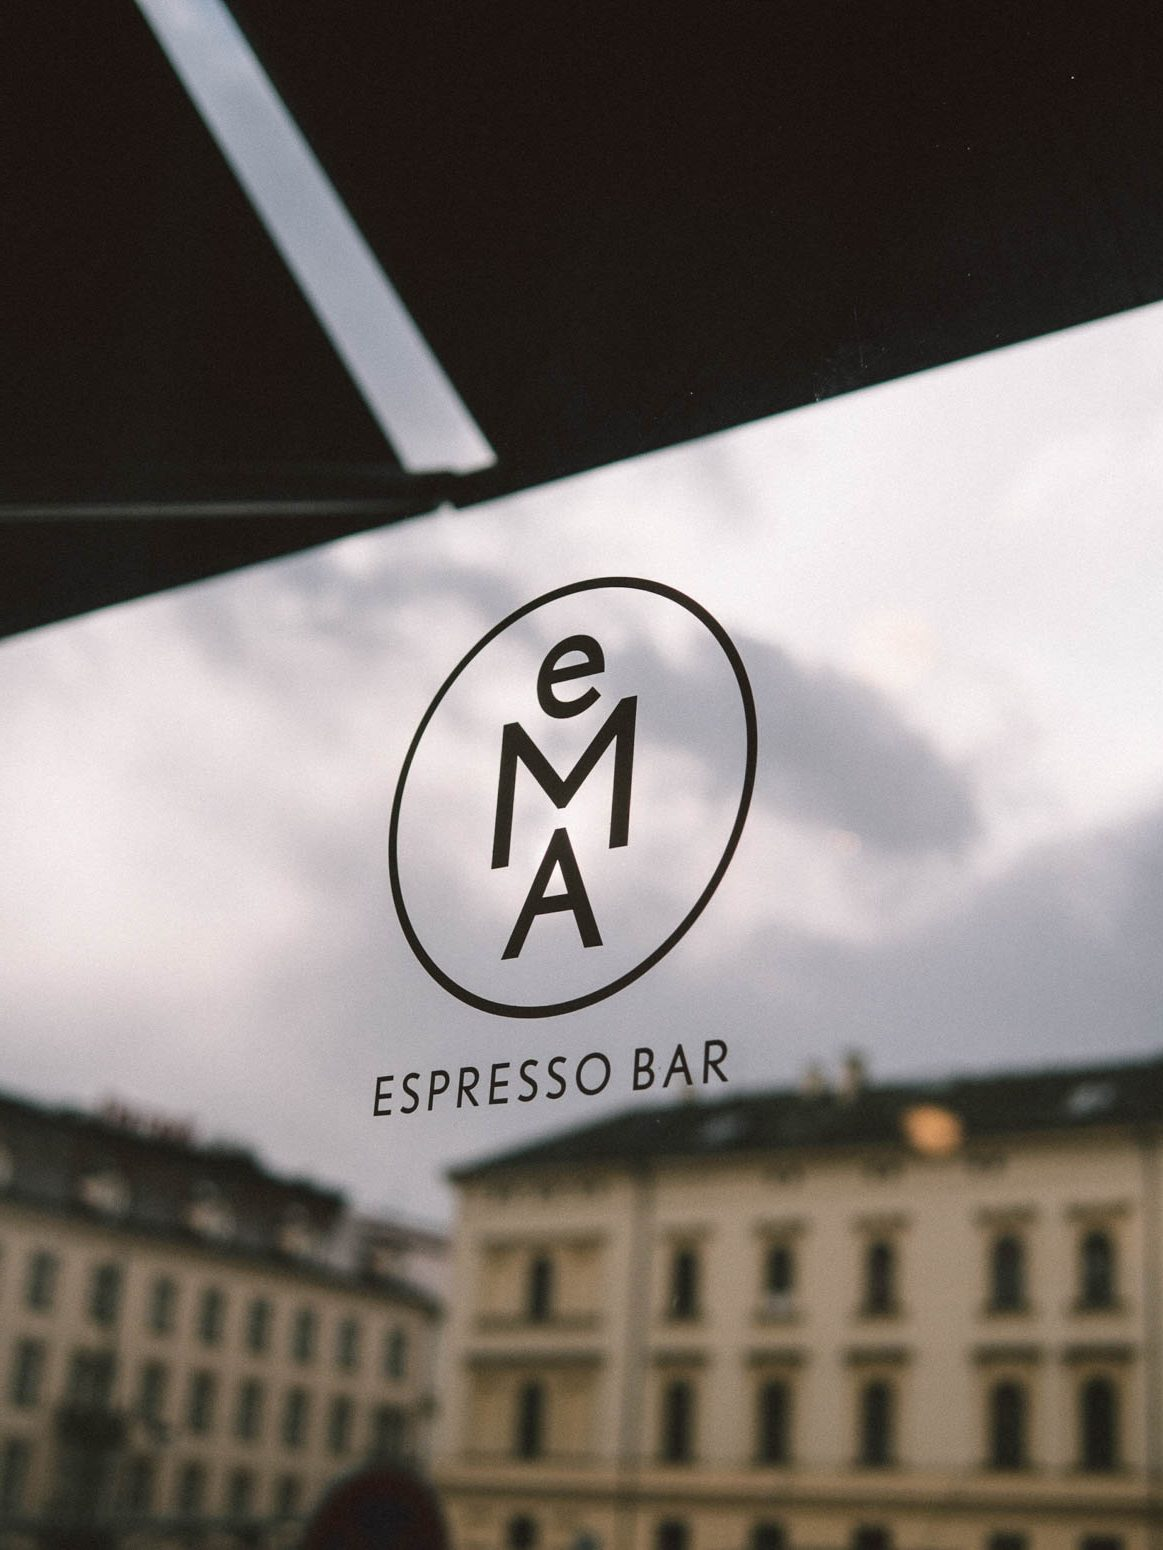 prag-praha-prague-travel-city-visit-street-old-town-cafe-ema-espresso-bar-cool